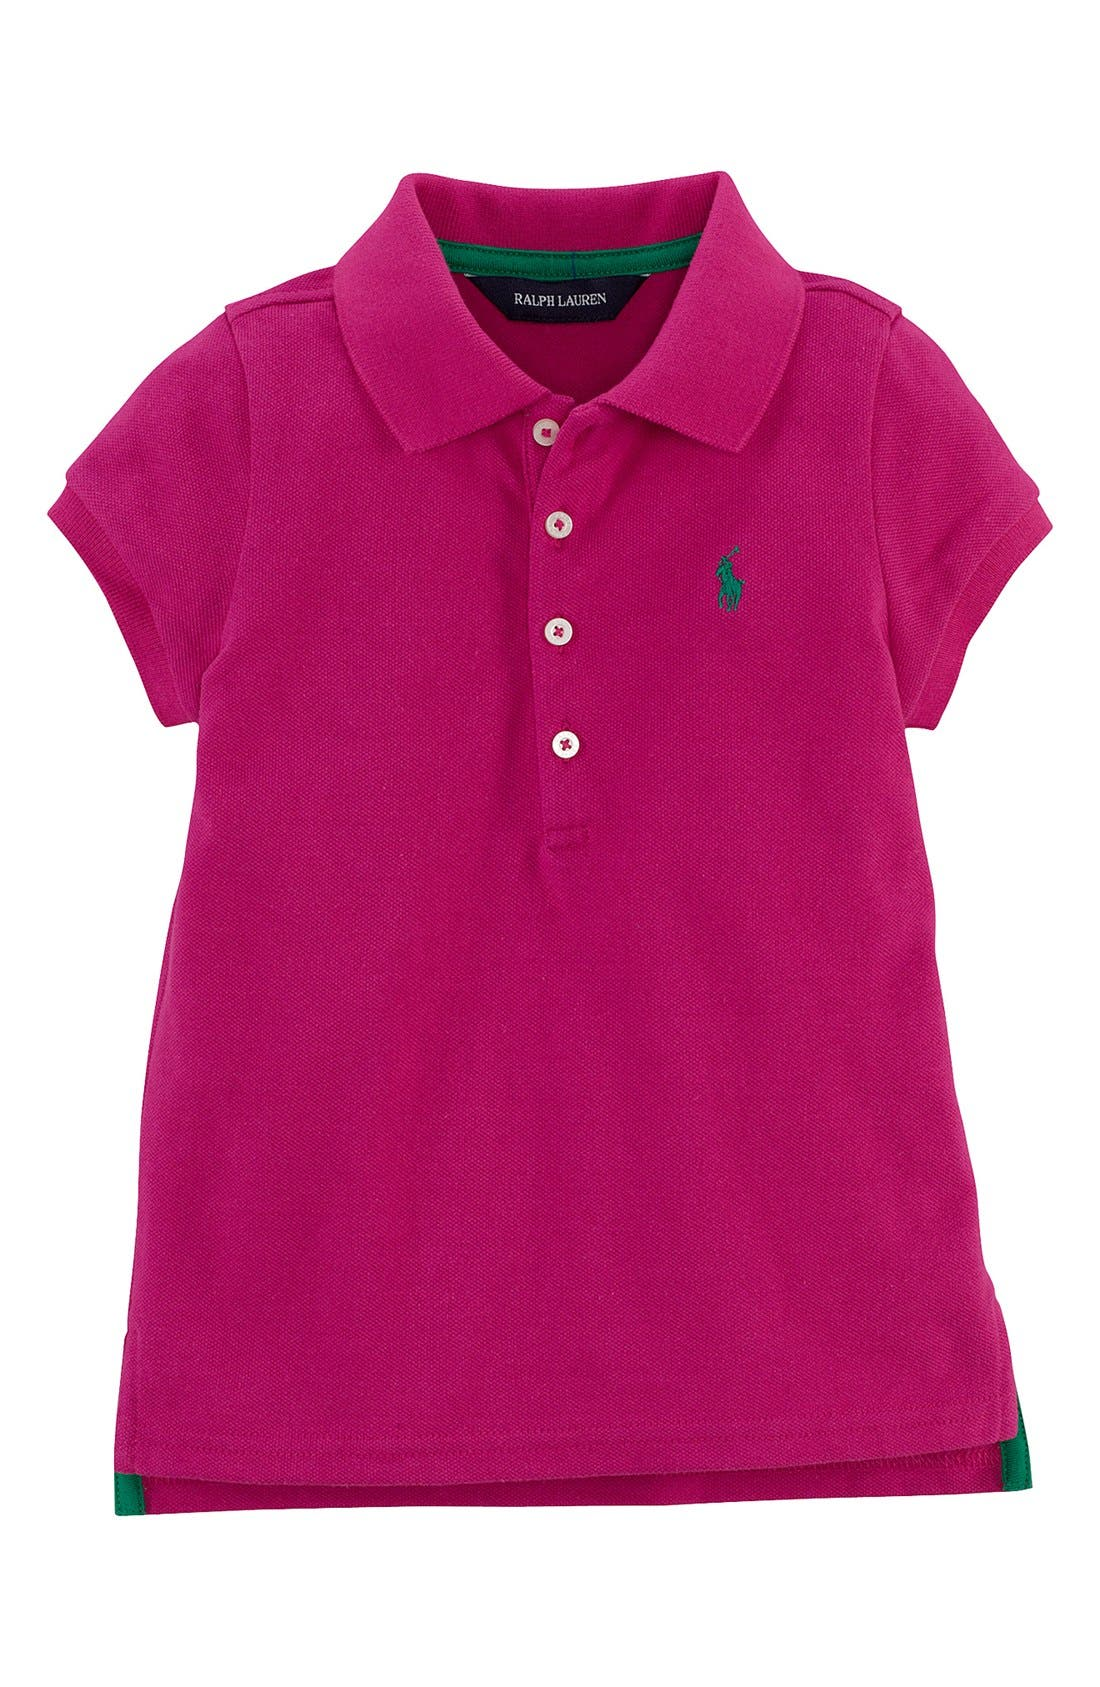 Alternate Image 1 Selected - Ralph Lauren Polo Shirt (Toddler Girls)